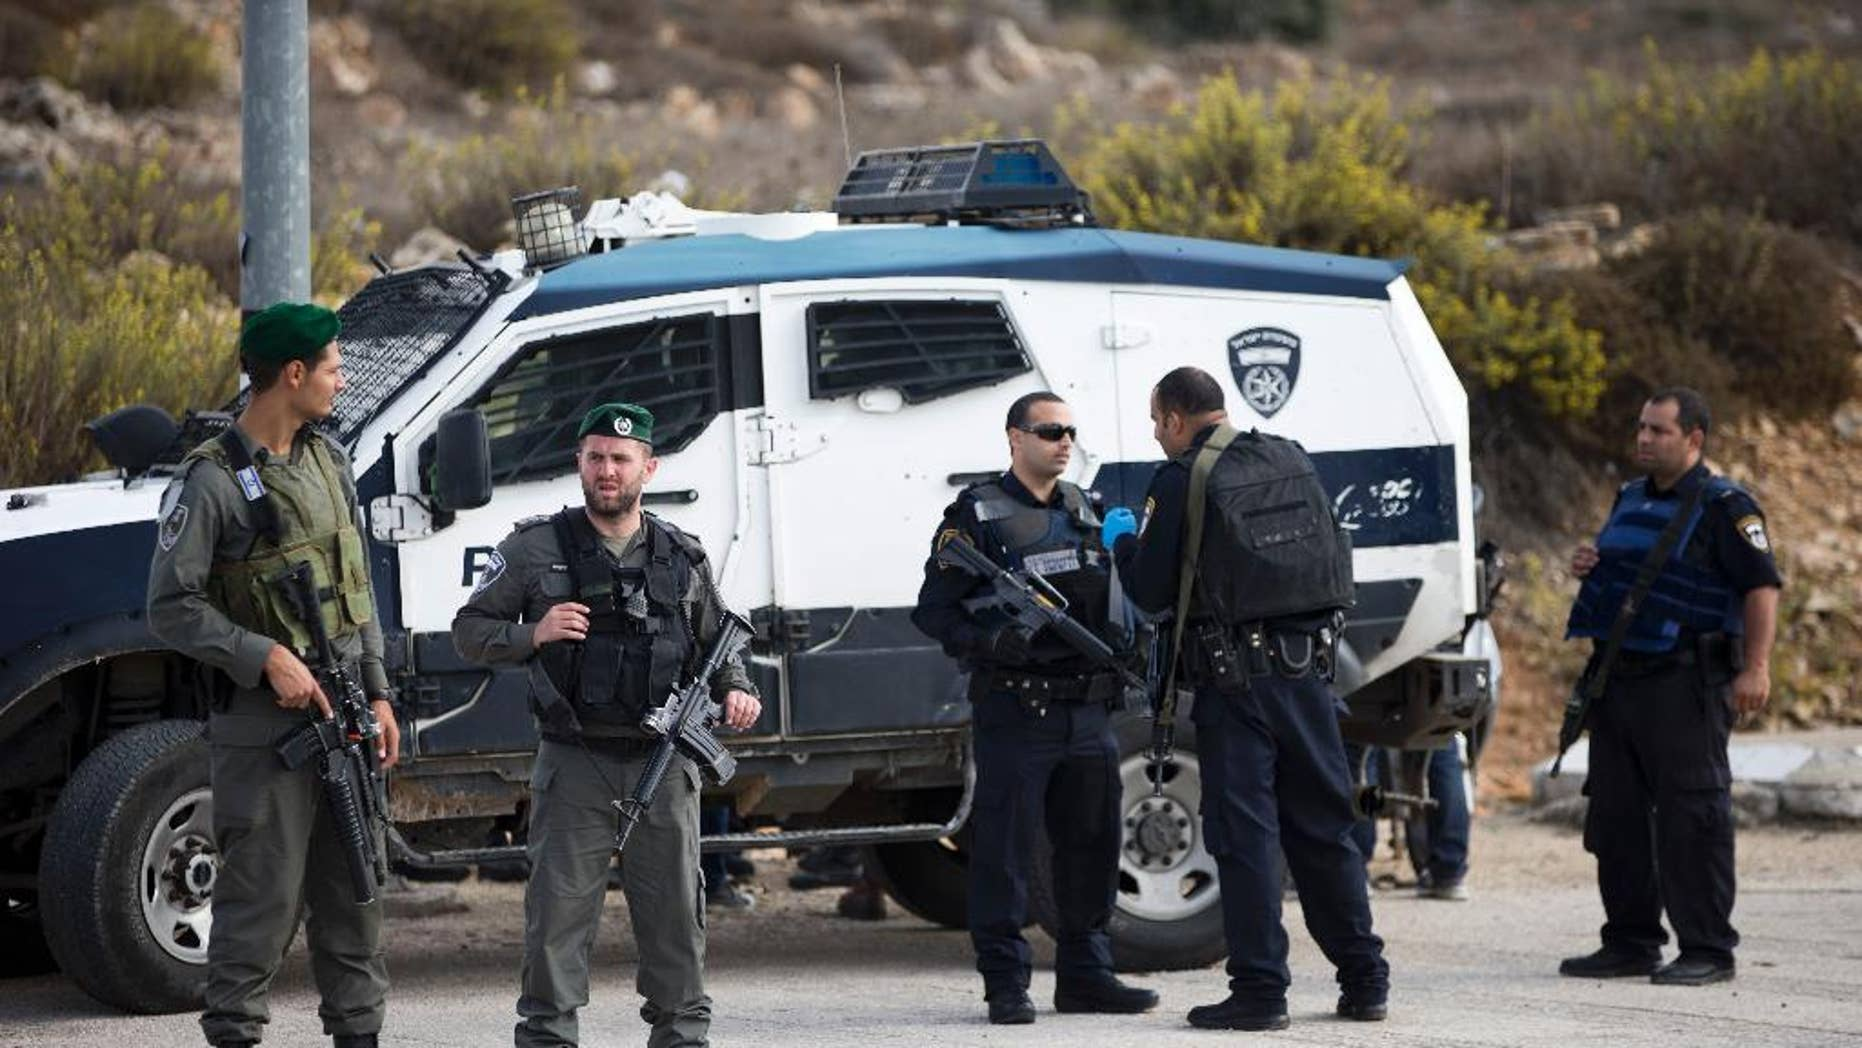 Israeli border police officers secure a checkpoint near the West Bank town of Nablus, Friday, Oct. 30, 2015. (AP Photo/Ariel Schalit)